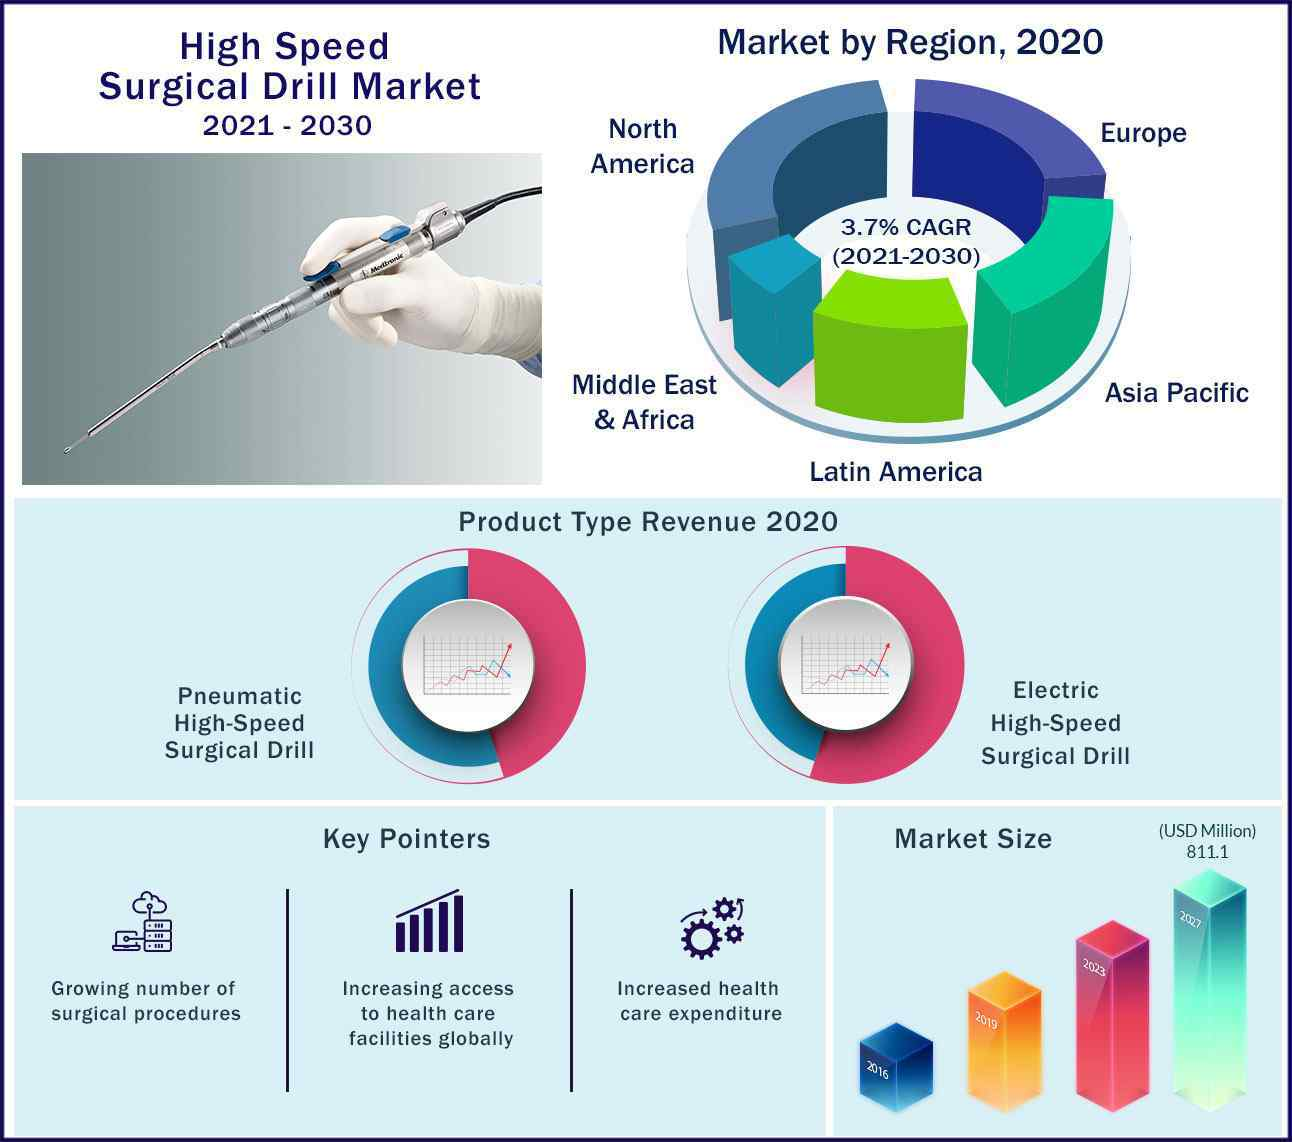 Global High Speed Surgical Drill Market 2021-2030